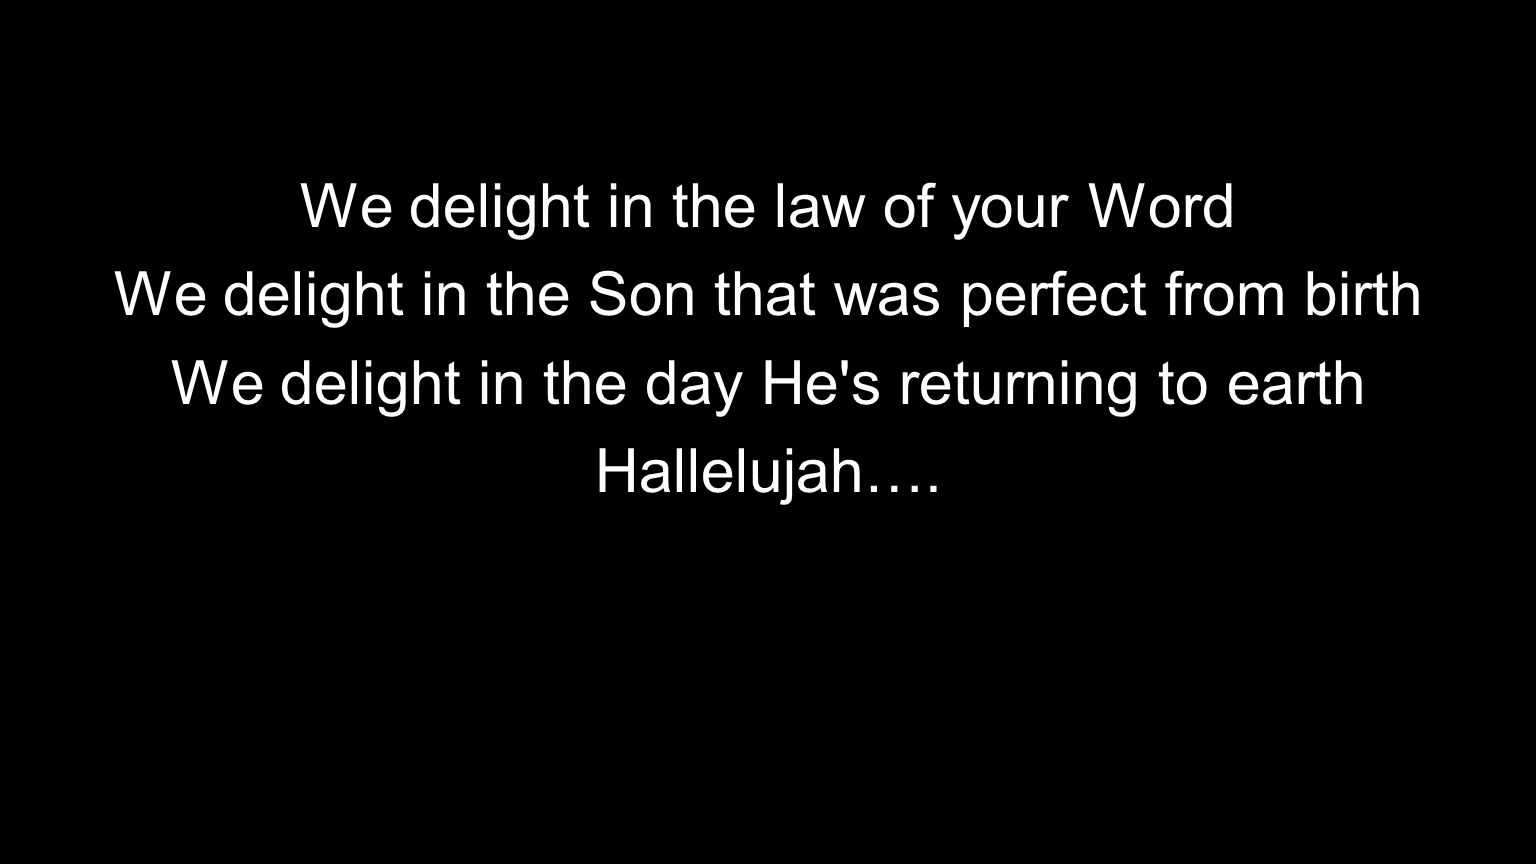 We delight in the law of your Word